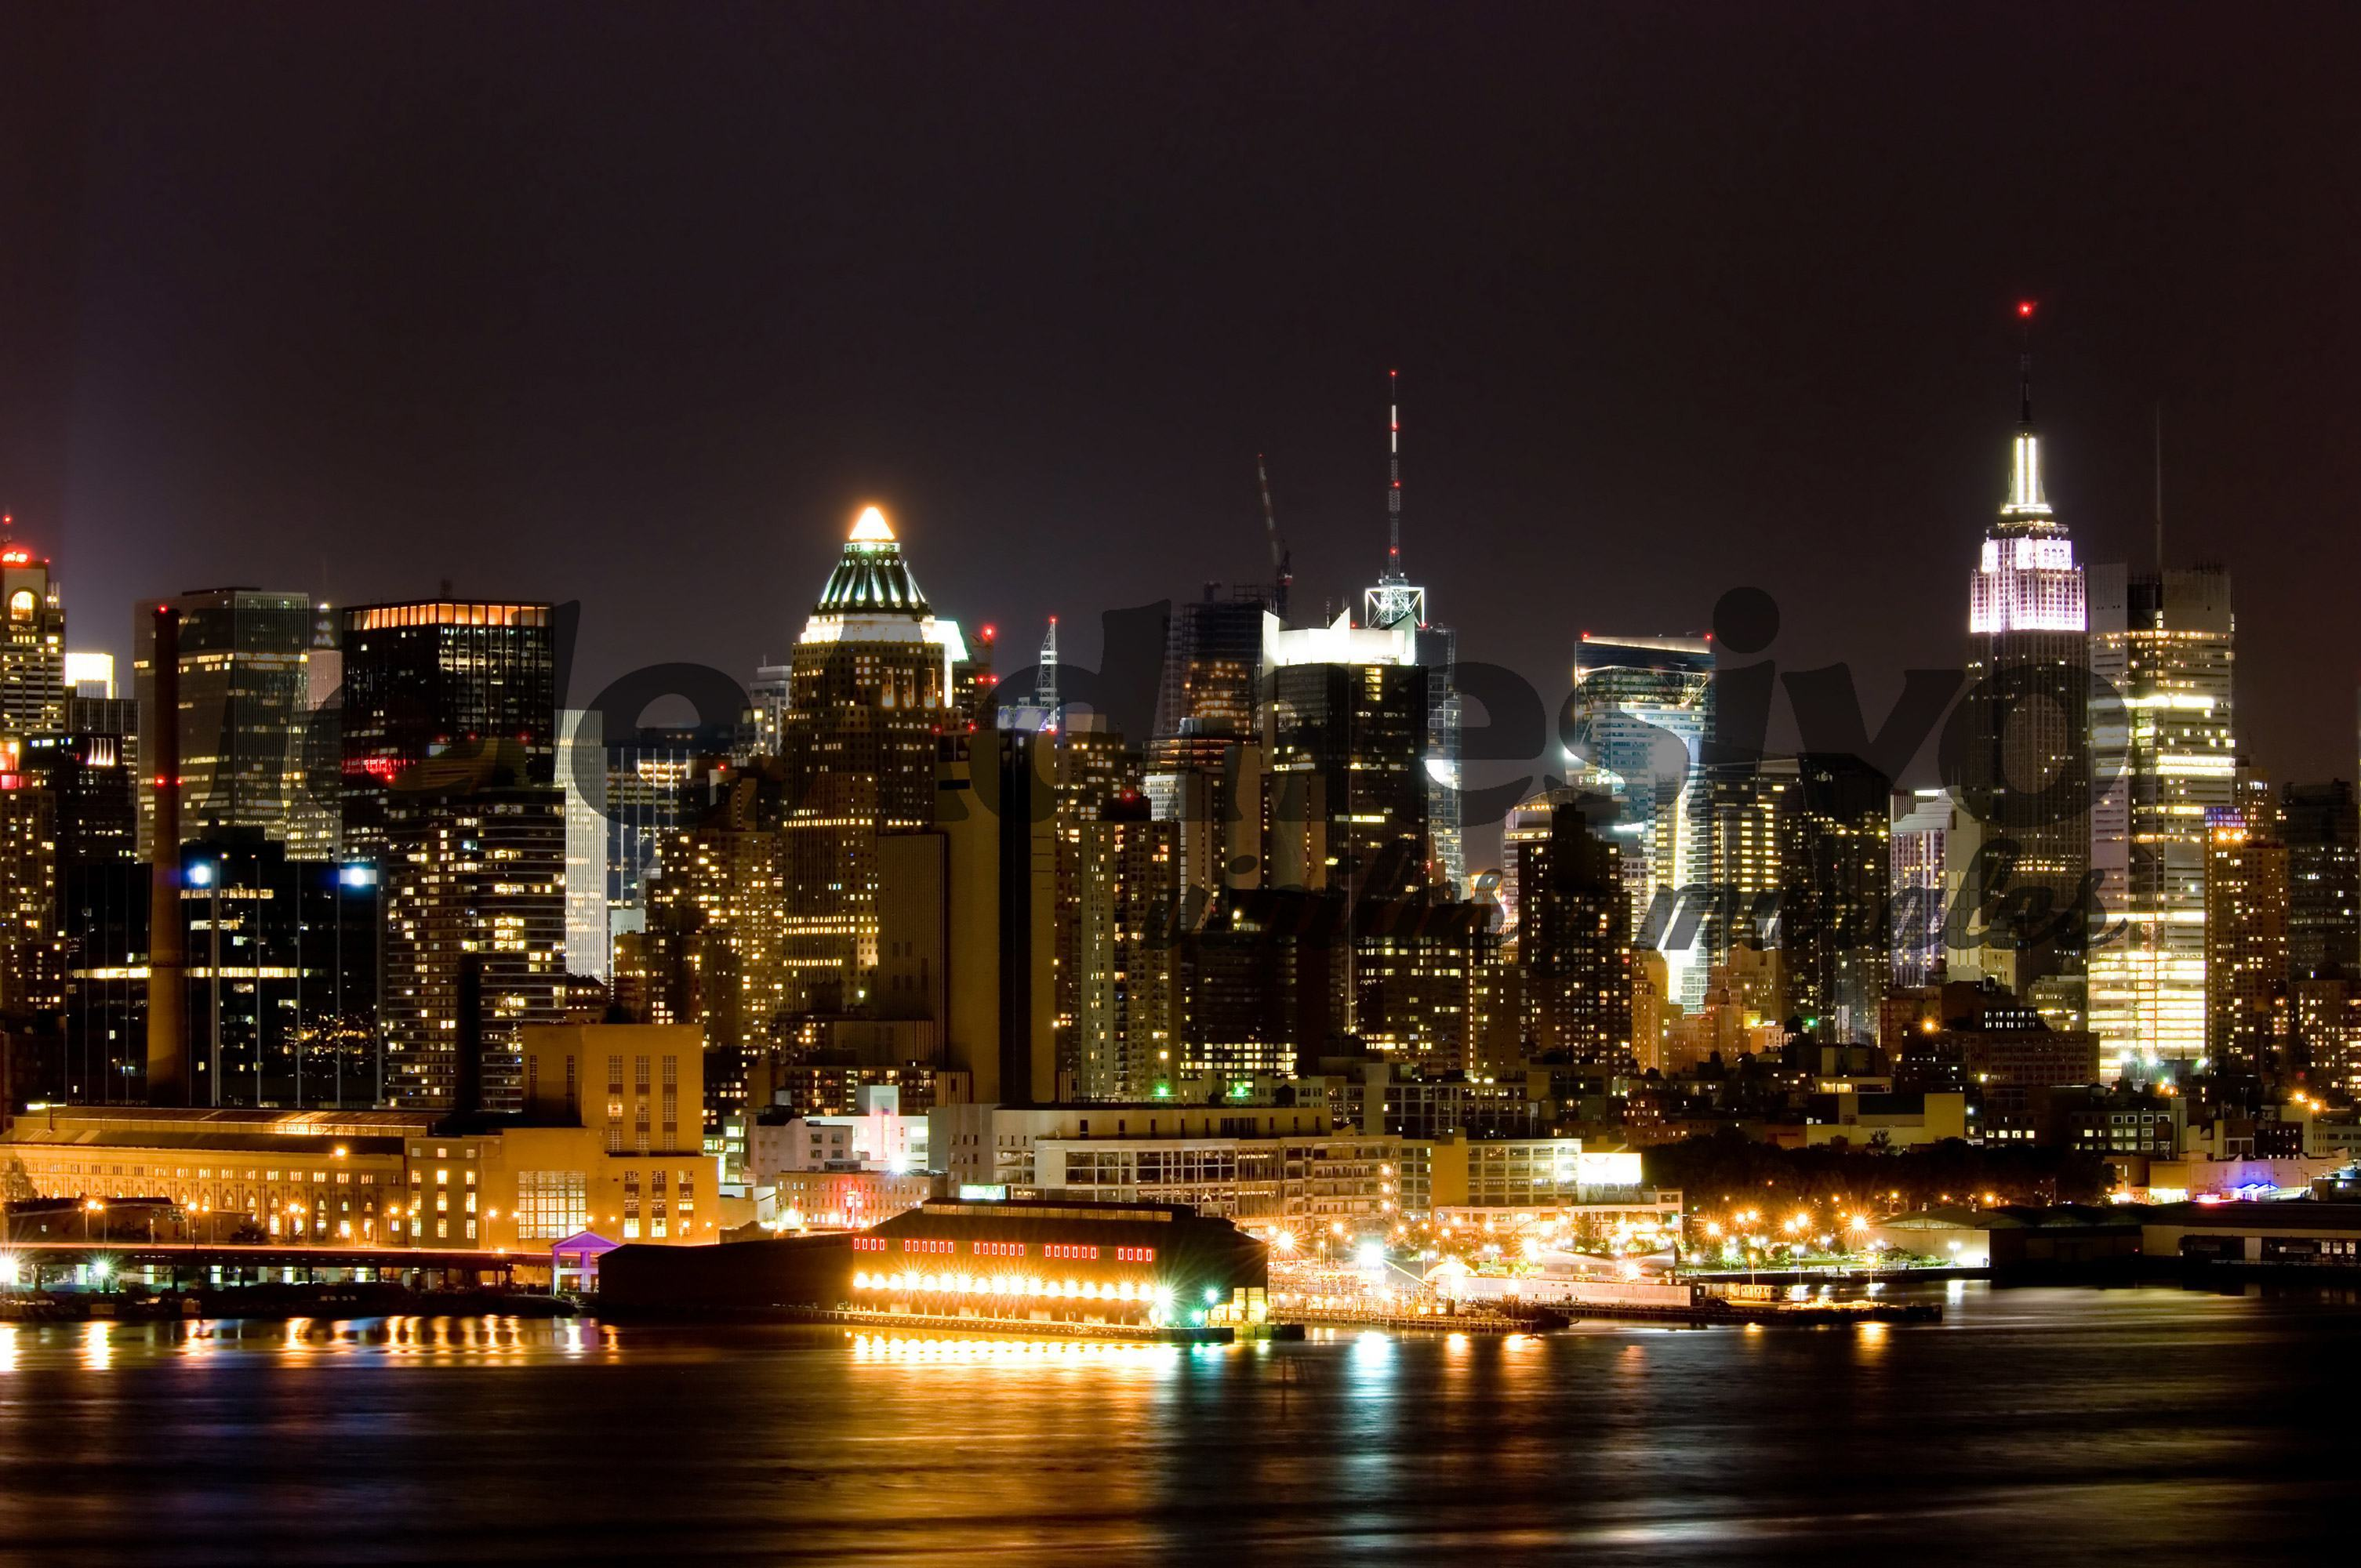 Fotomurales: New York nocturna